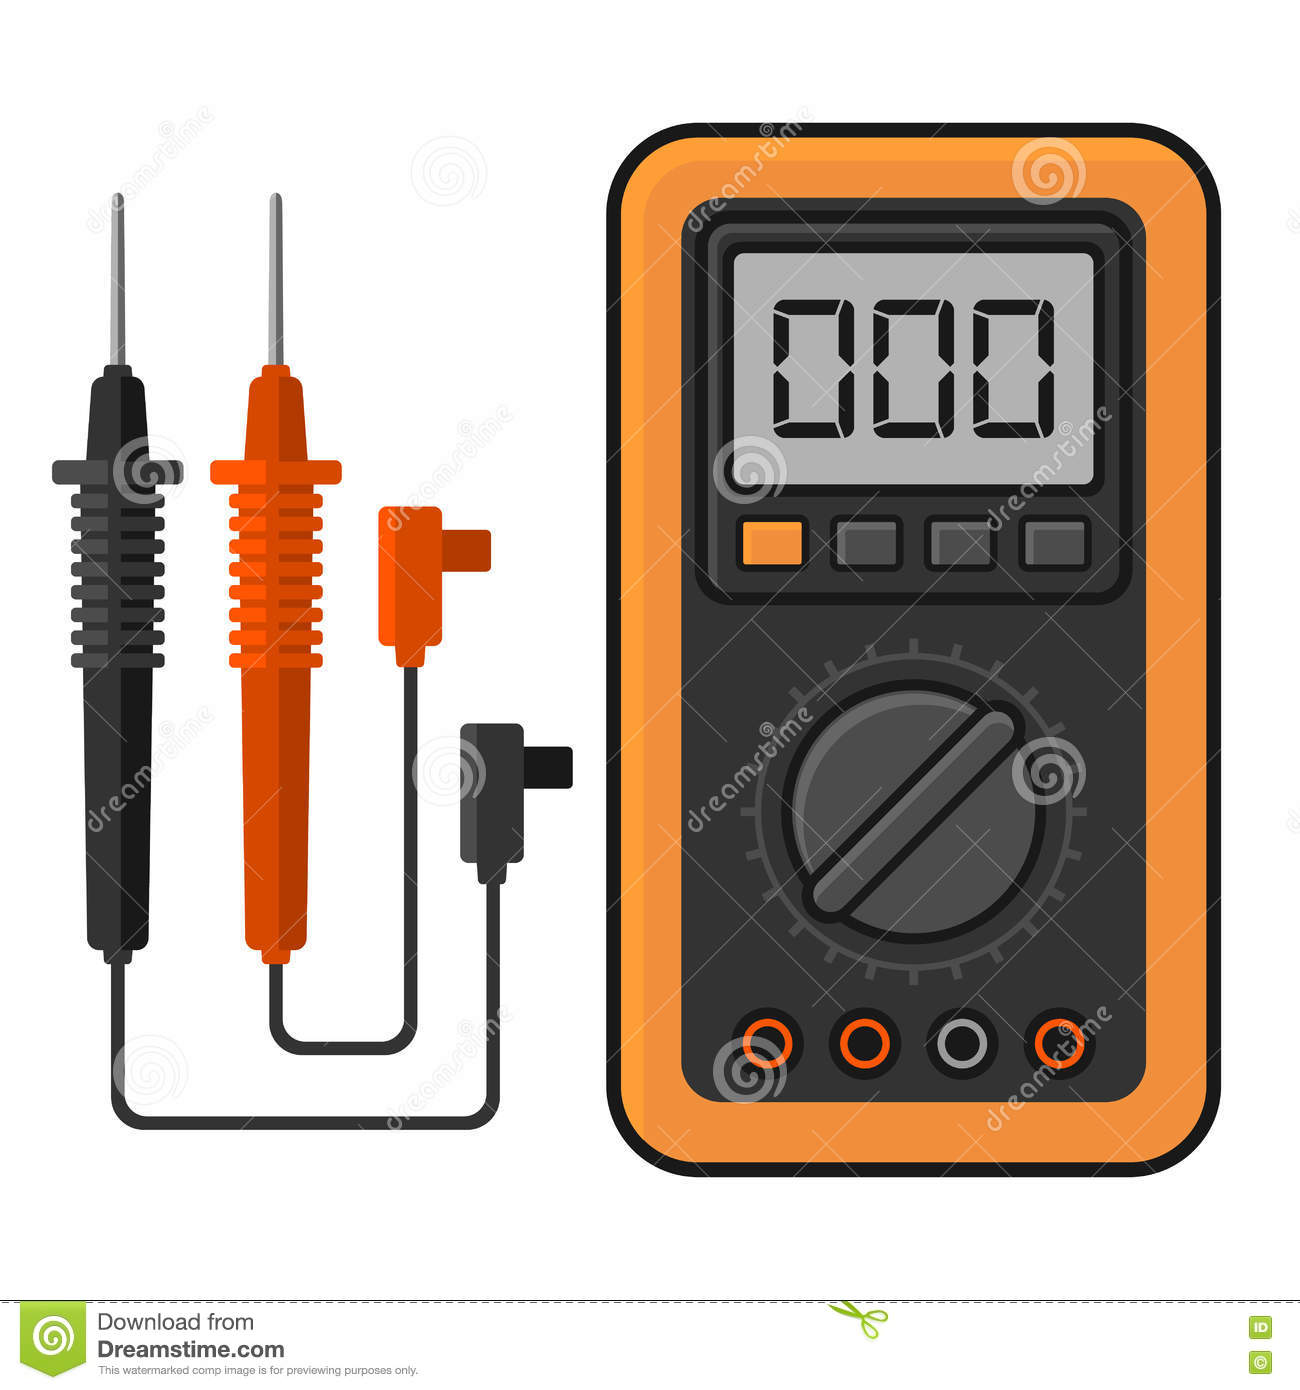 Electrical Measuring Instruments : Ammeter cartoons illustrations vector stock images